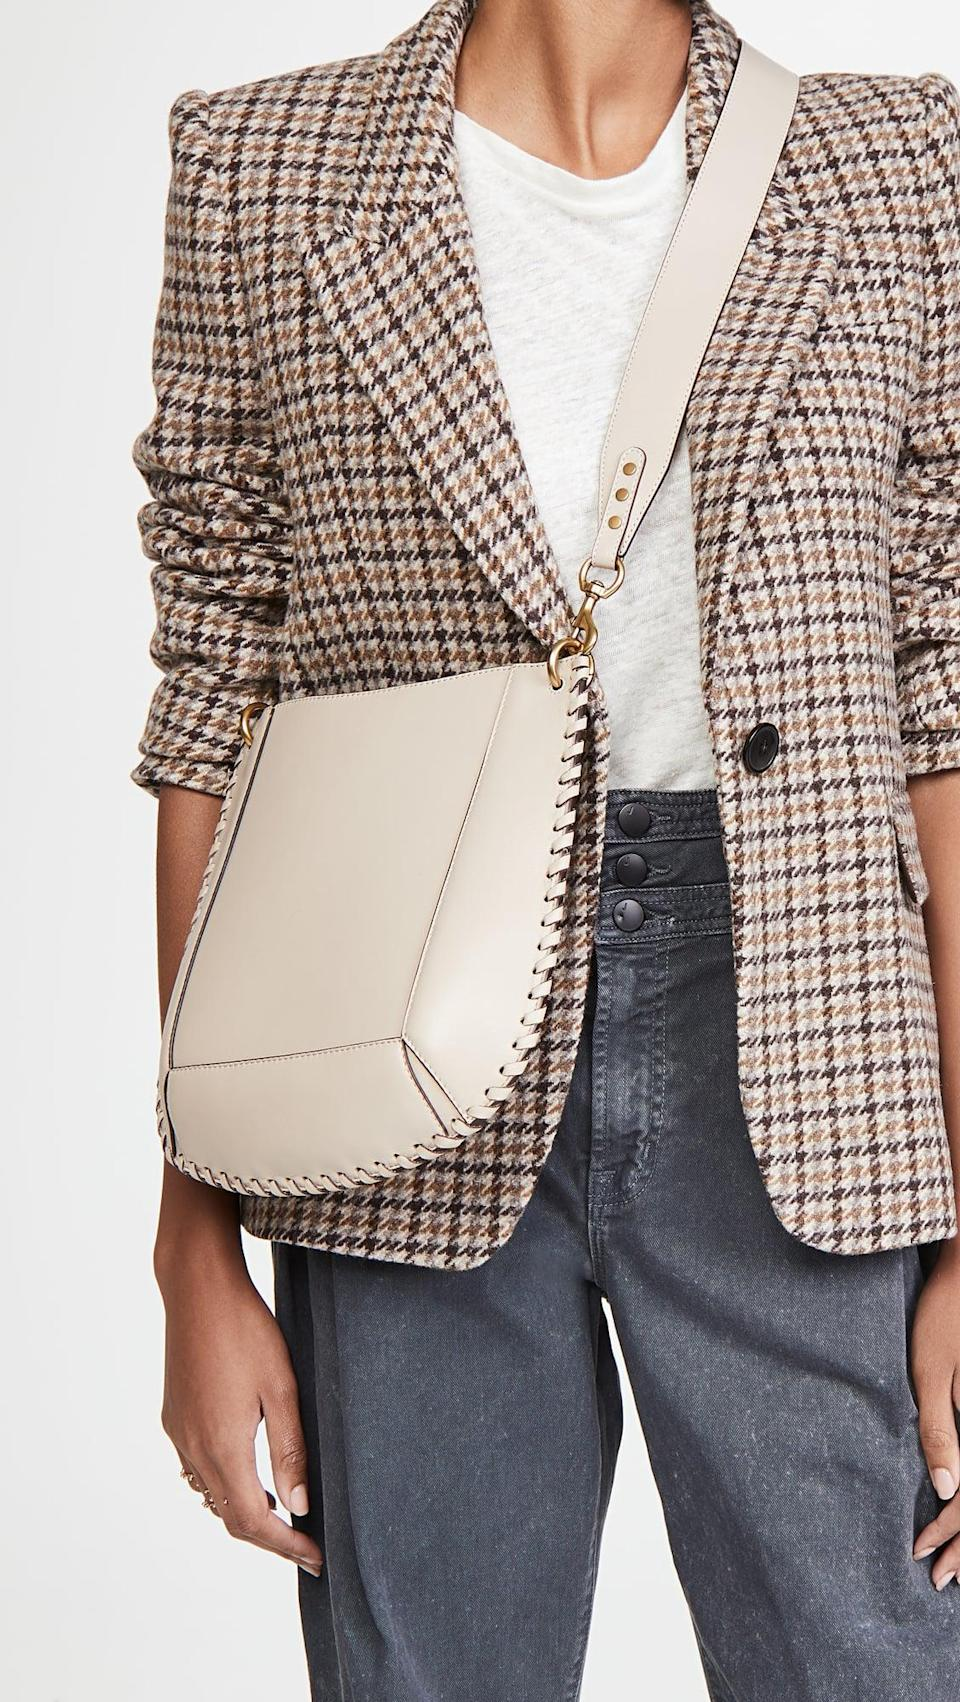 <p>We're obsessed with everything about this <span>Isabel Marant Oskan New Crossbody Bag</span> ($890). The color, the studs, it's everything we need in an everyday bag.</p>